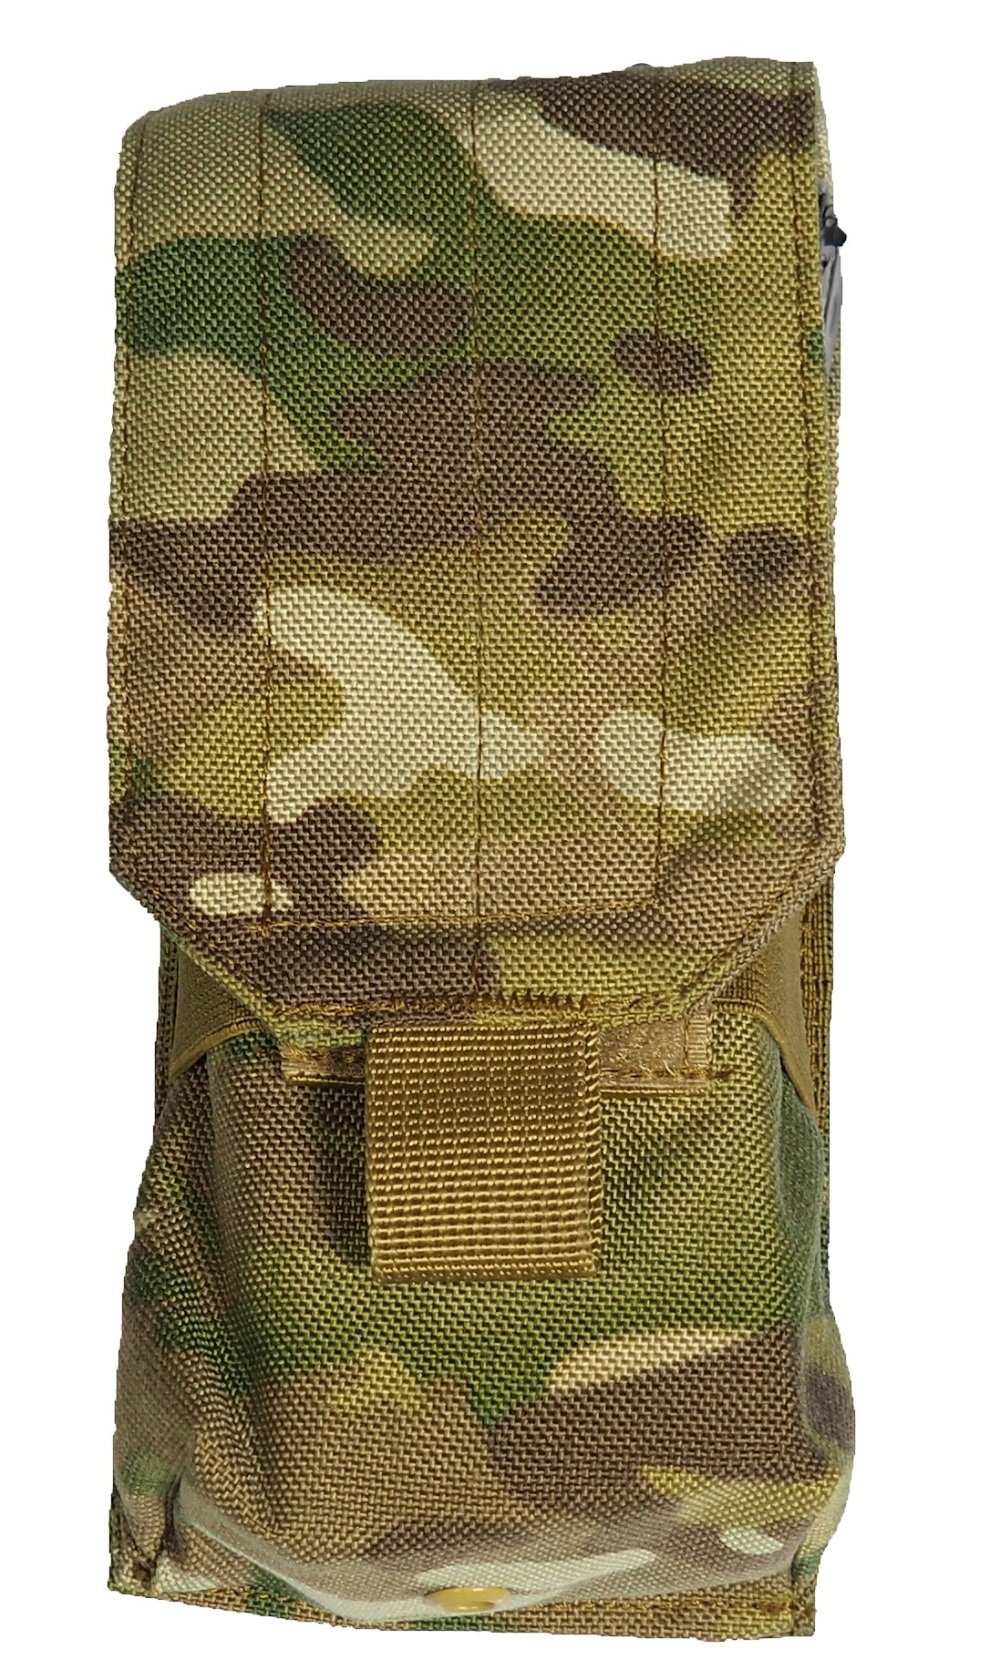 Masada Armour M4/M16 Double Mag Pouch